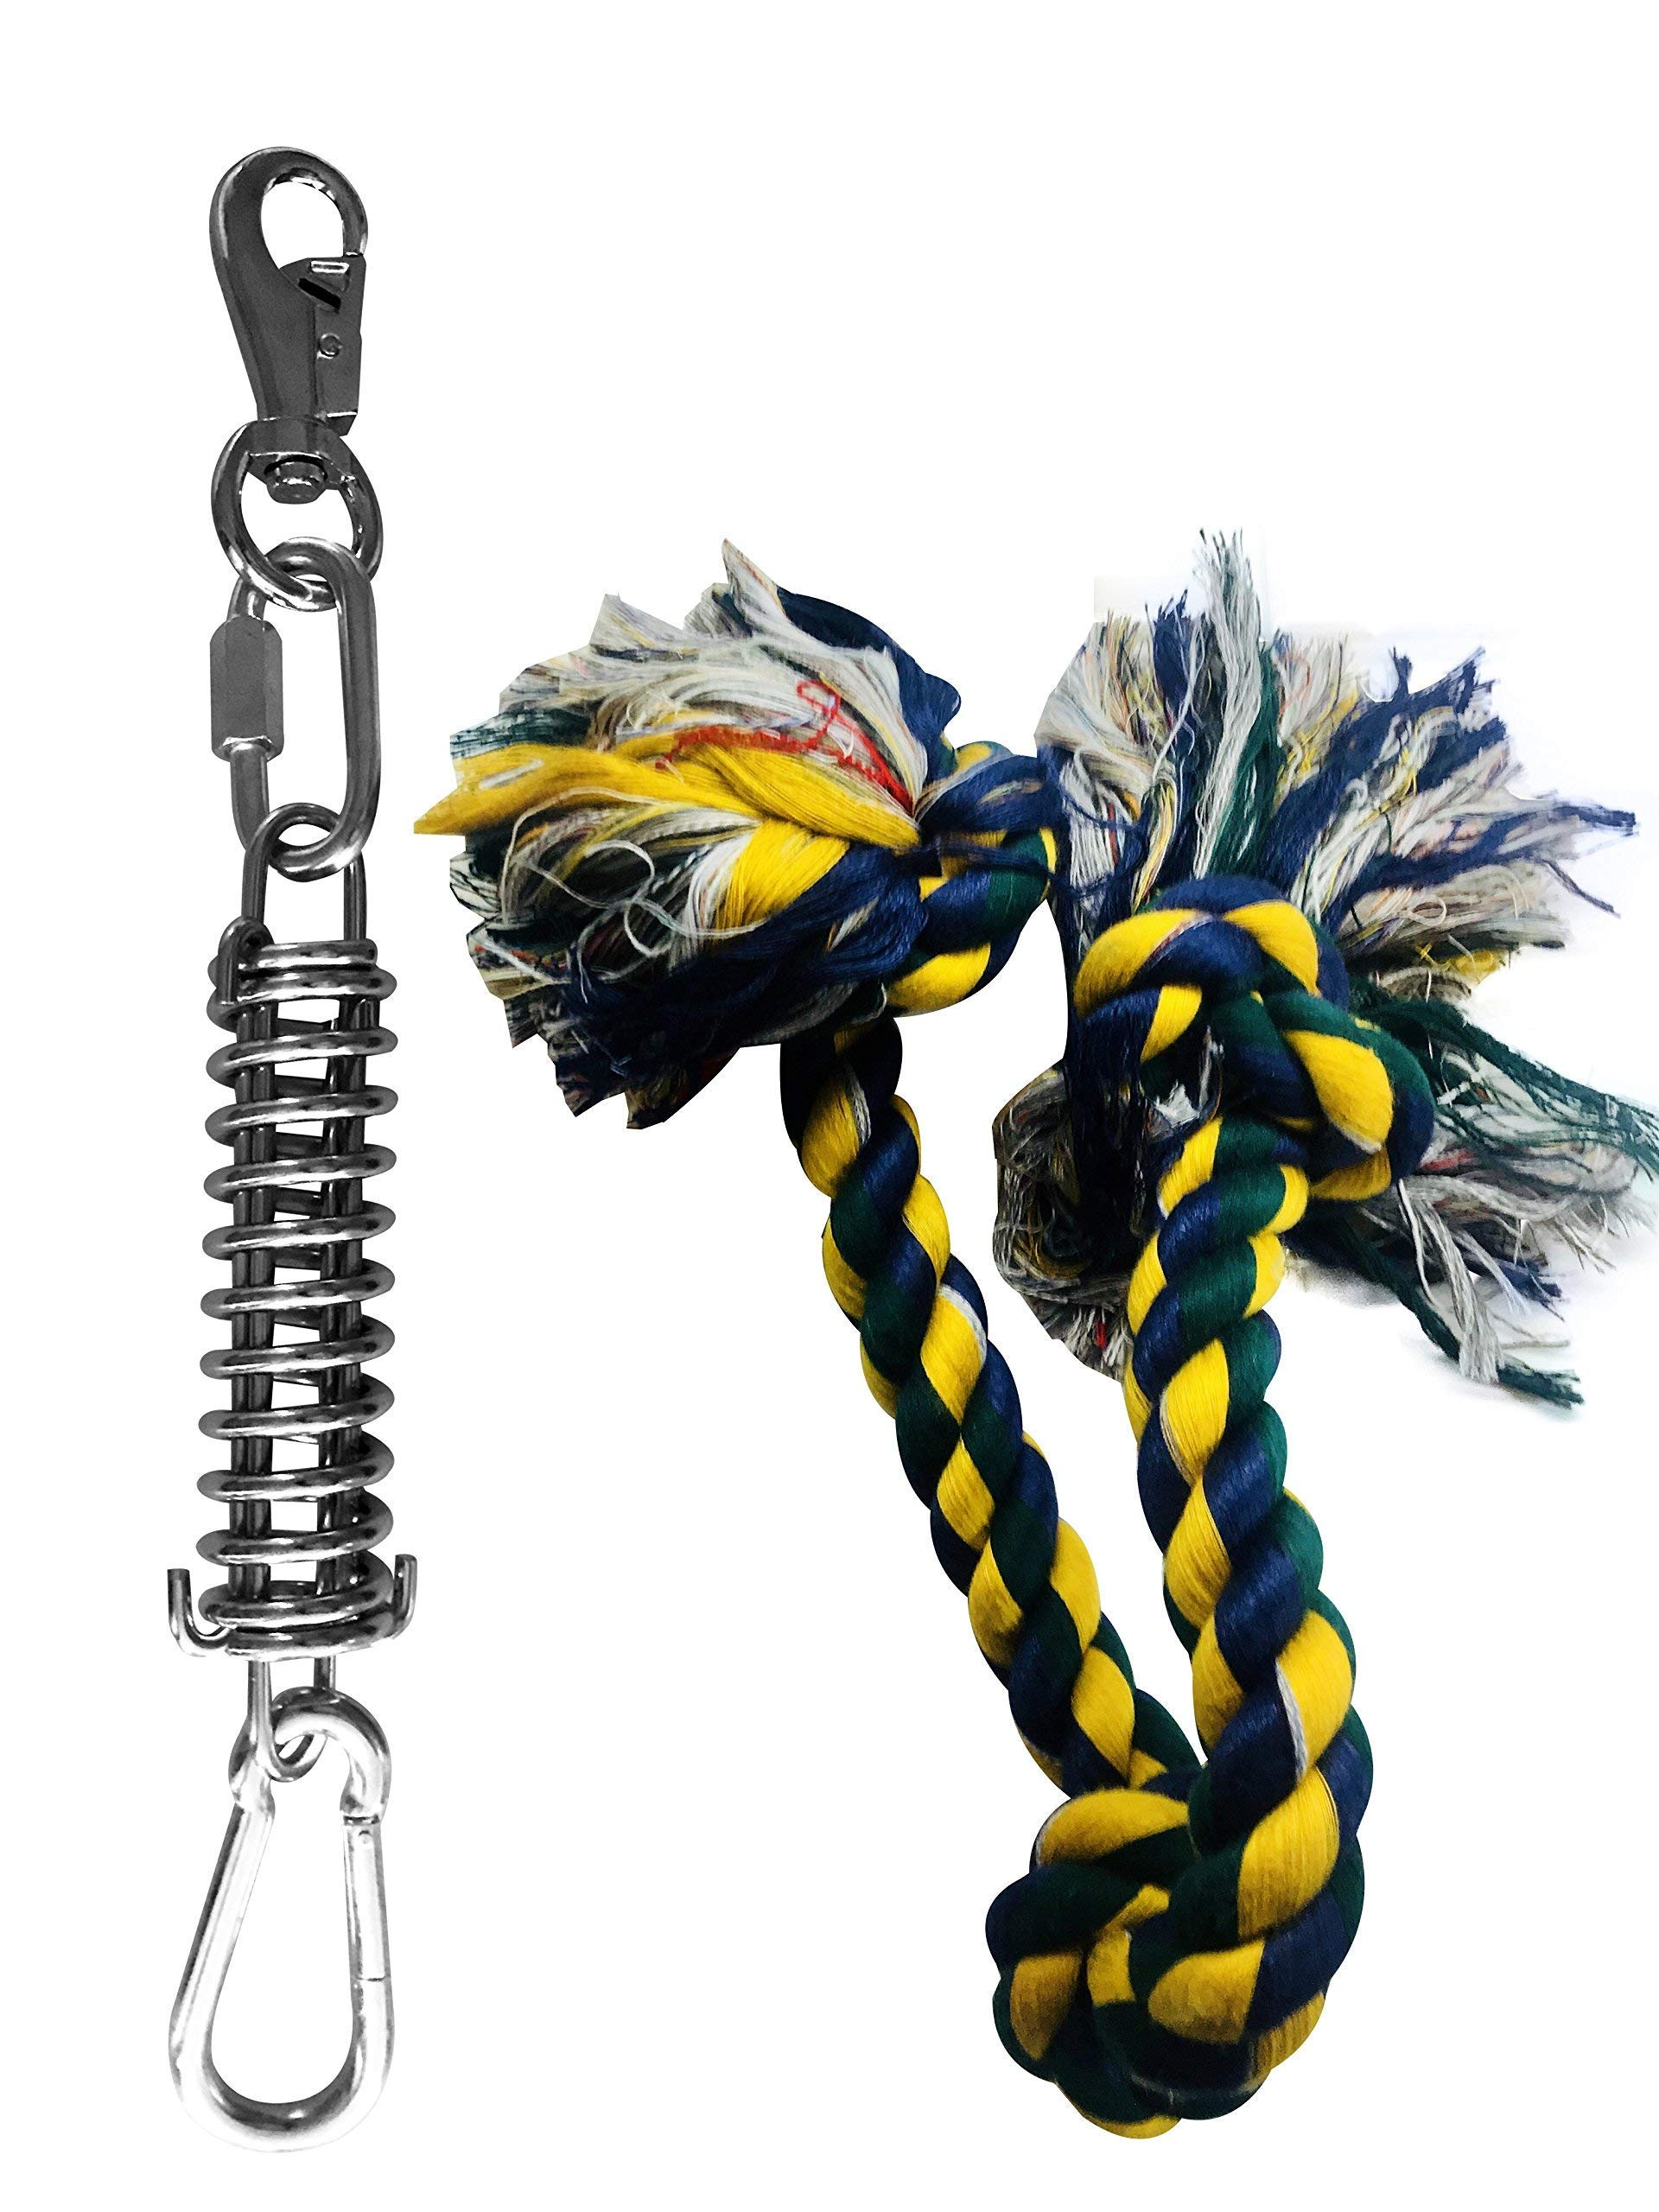 SoCal Bully Pit Bull Spring Pole - (1) Dog Conditioner - Muscle Builder - $15 Tug Rope Included!- Fun for all Breeds! - Priority mail shipping! by SoCal Bully